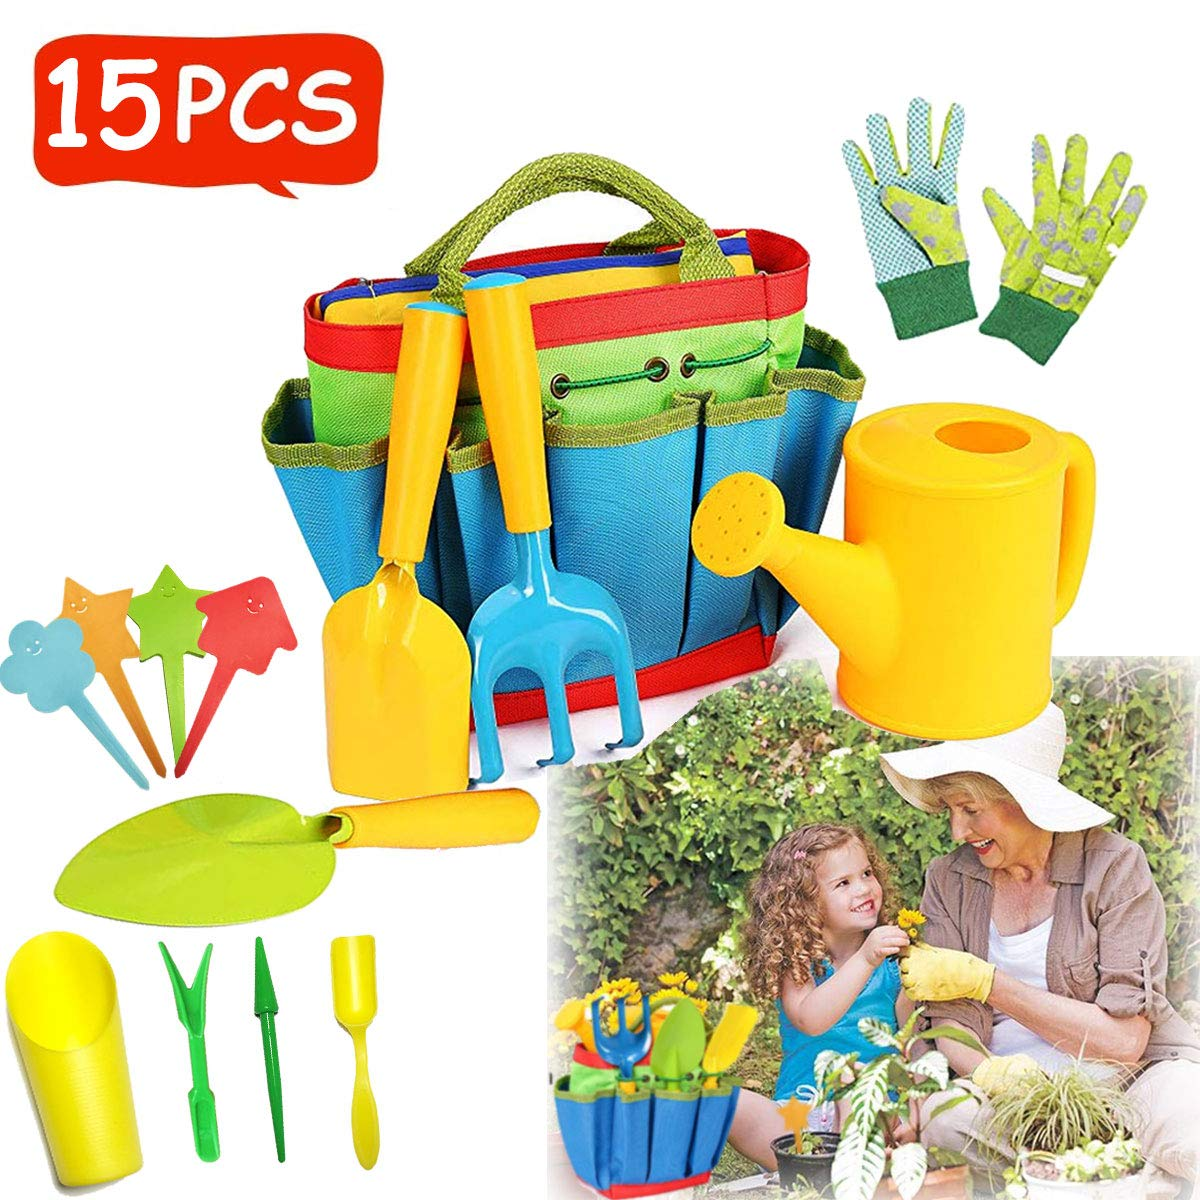 Kids Gardening Tools Kids Gardening Gloves Toddler Gardening Set Real Garden Tools For Kids Gardener Set Outdoor Toys Kids Gifts For Kids Boys Girls Gardening Kit With Tote Bag Dress Up Role Play